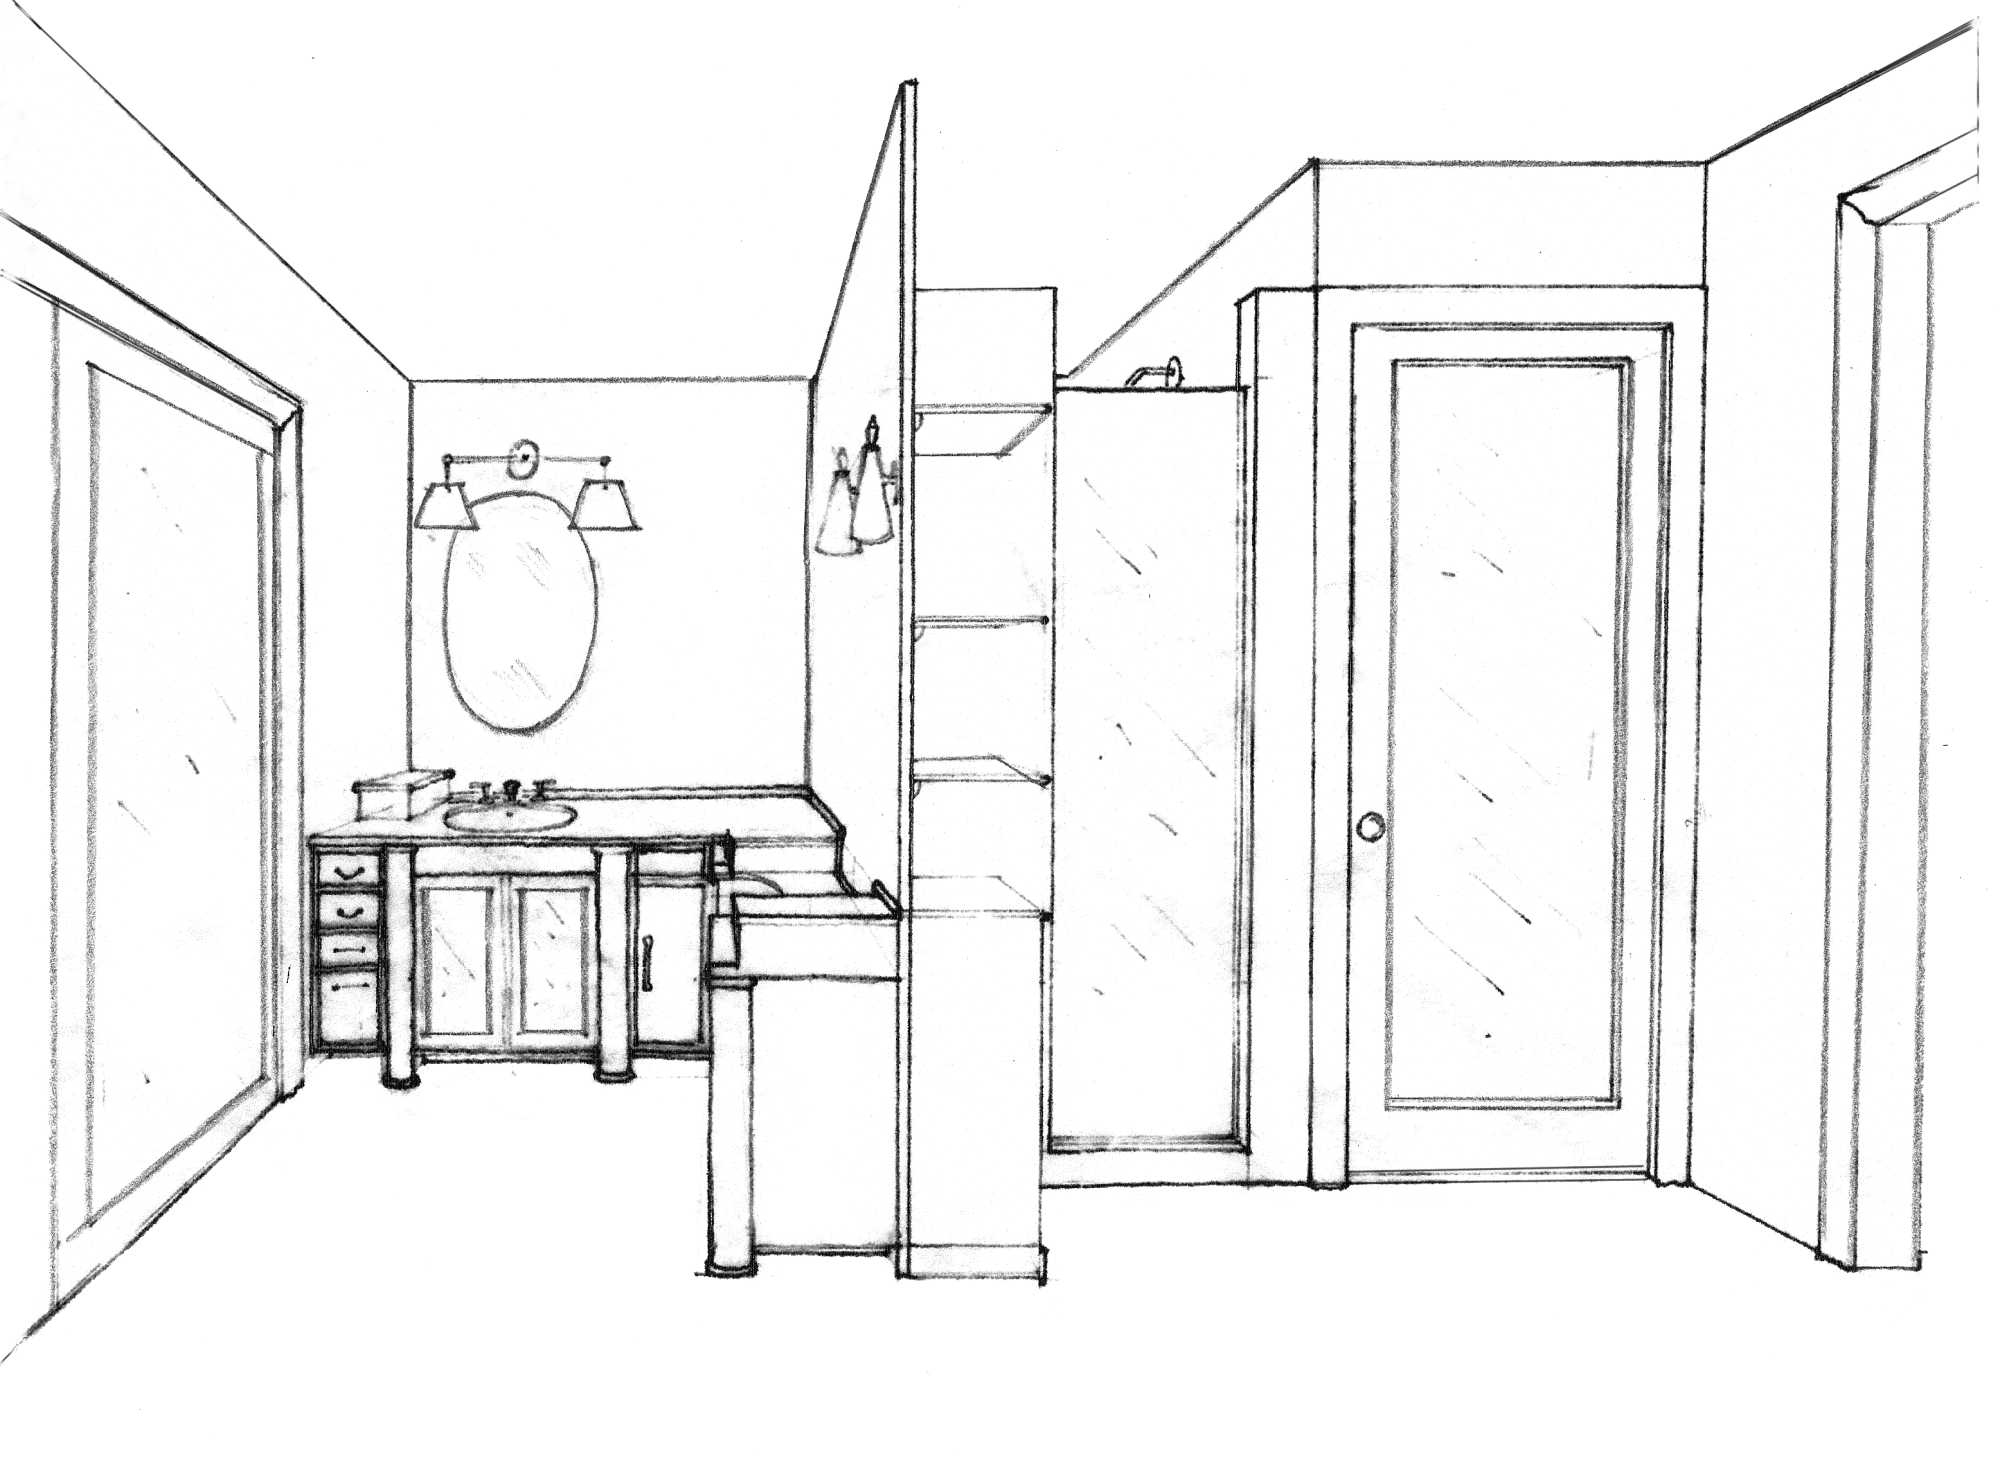 clipart royalty free download  spatial home for. Interior drawing beginner.